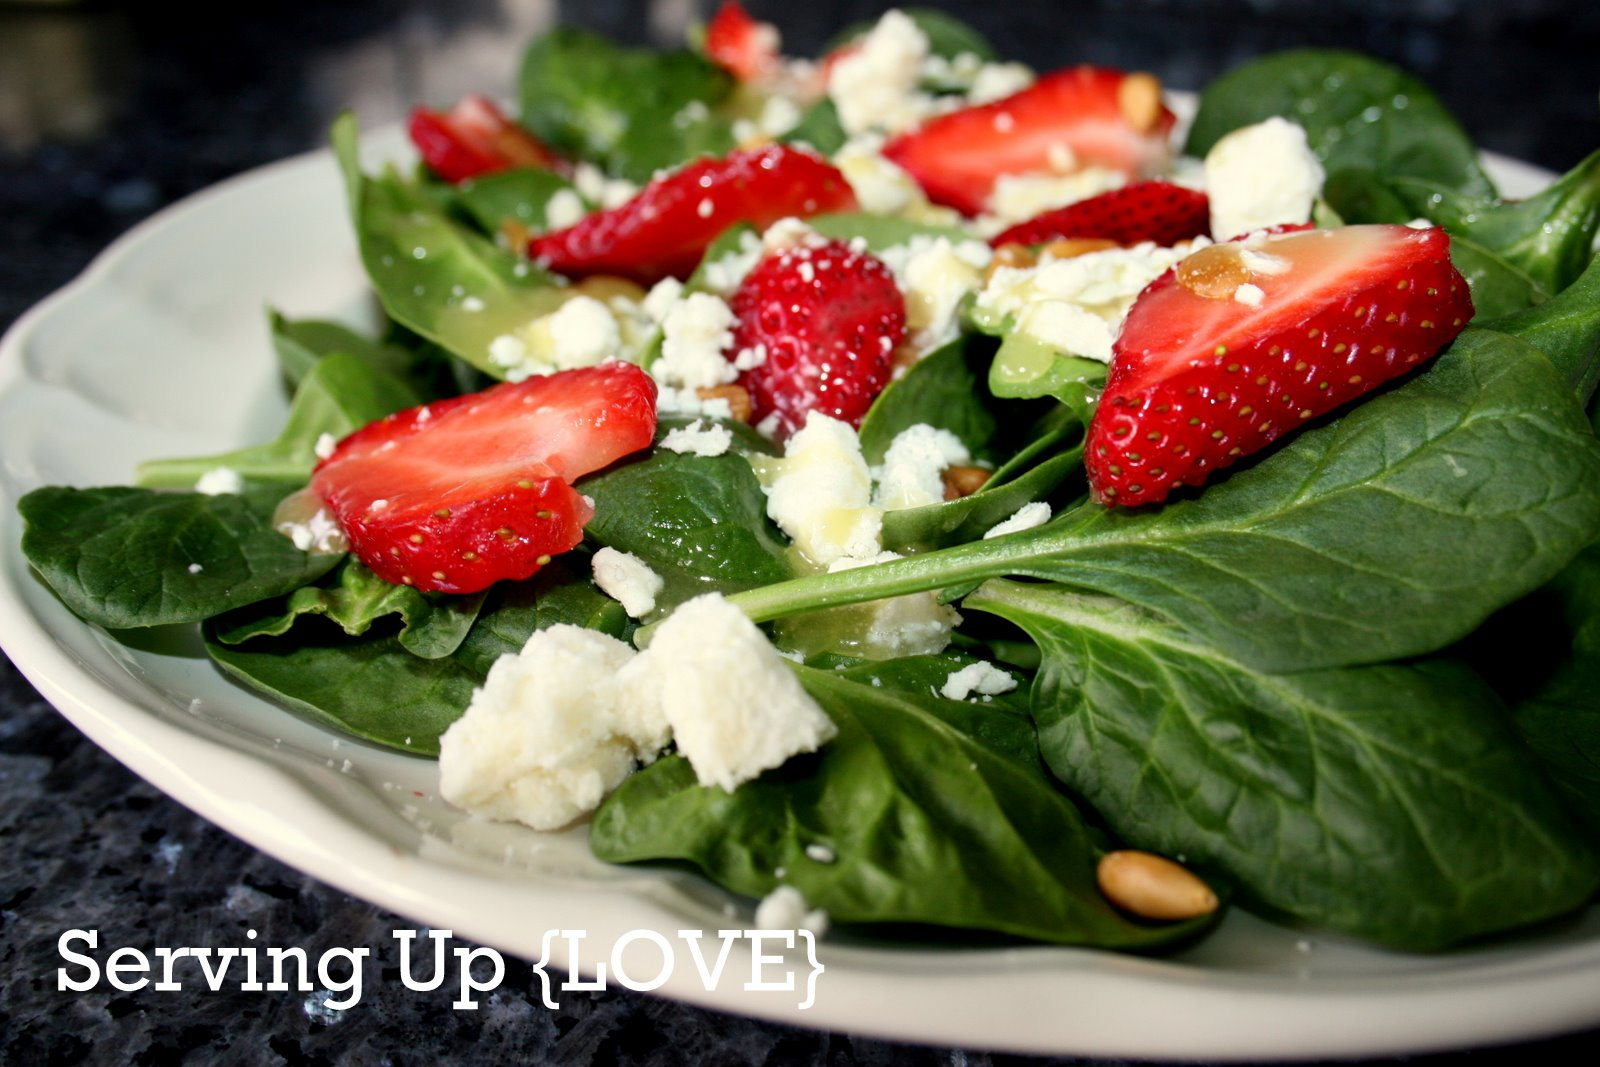 Katherine's Kitchen: Serving Up {Salad}: Strawberry Spinach Salad